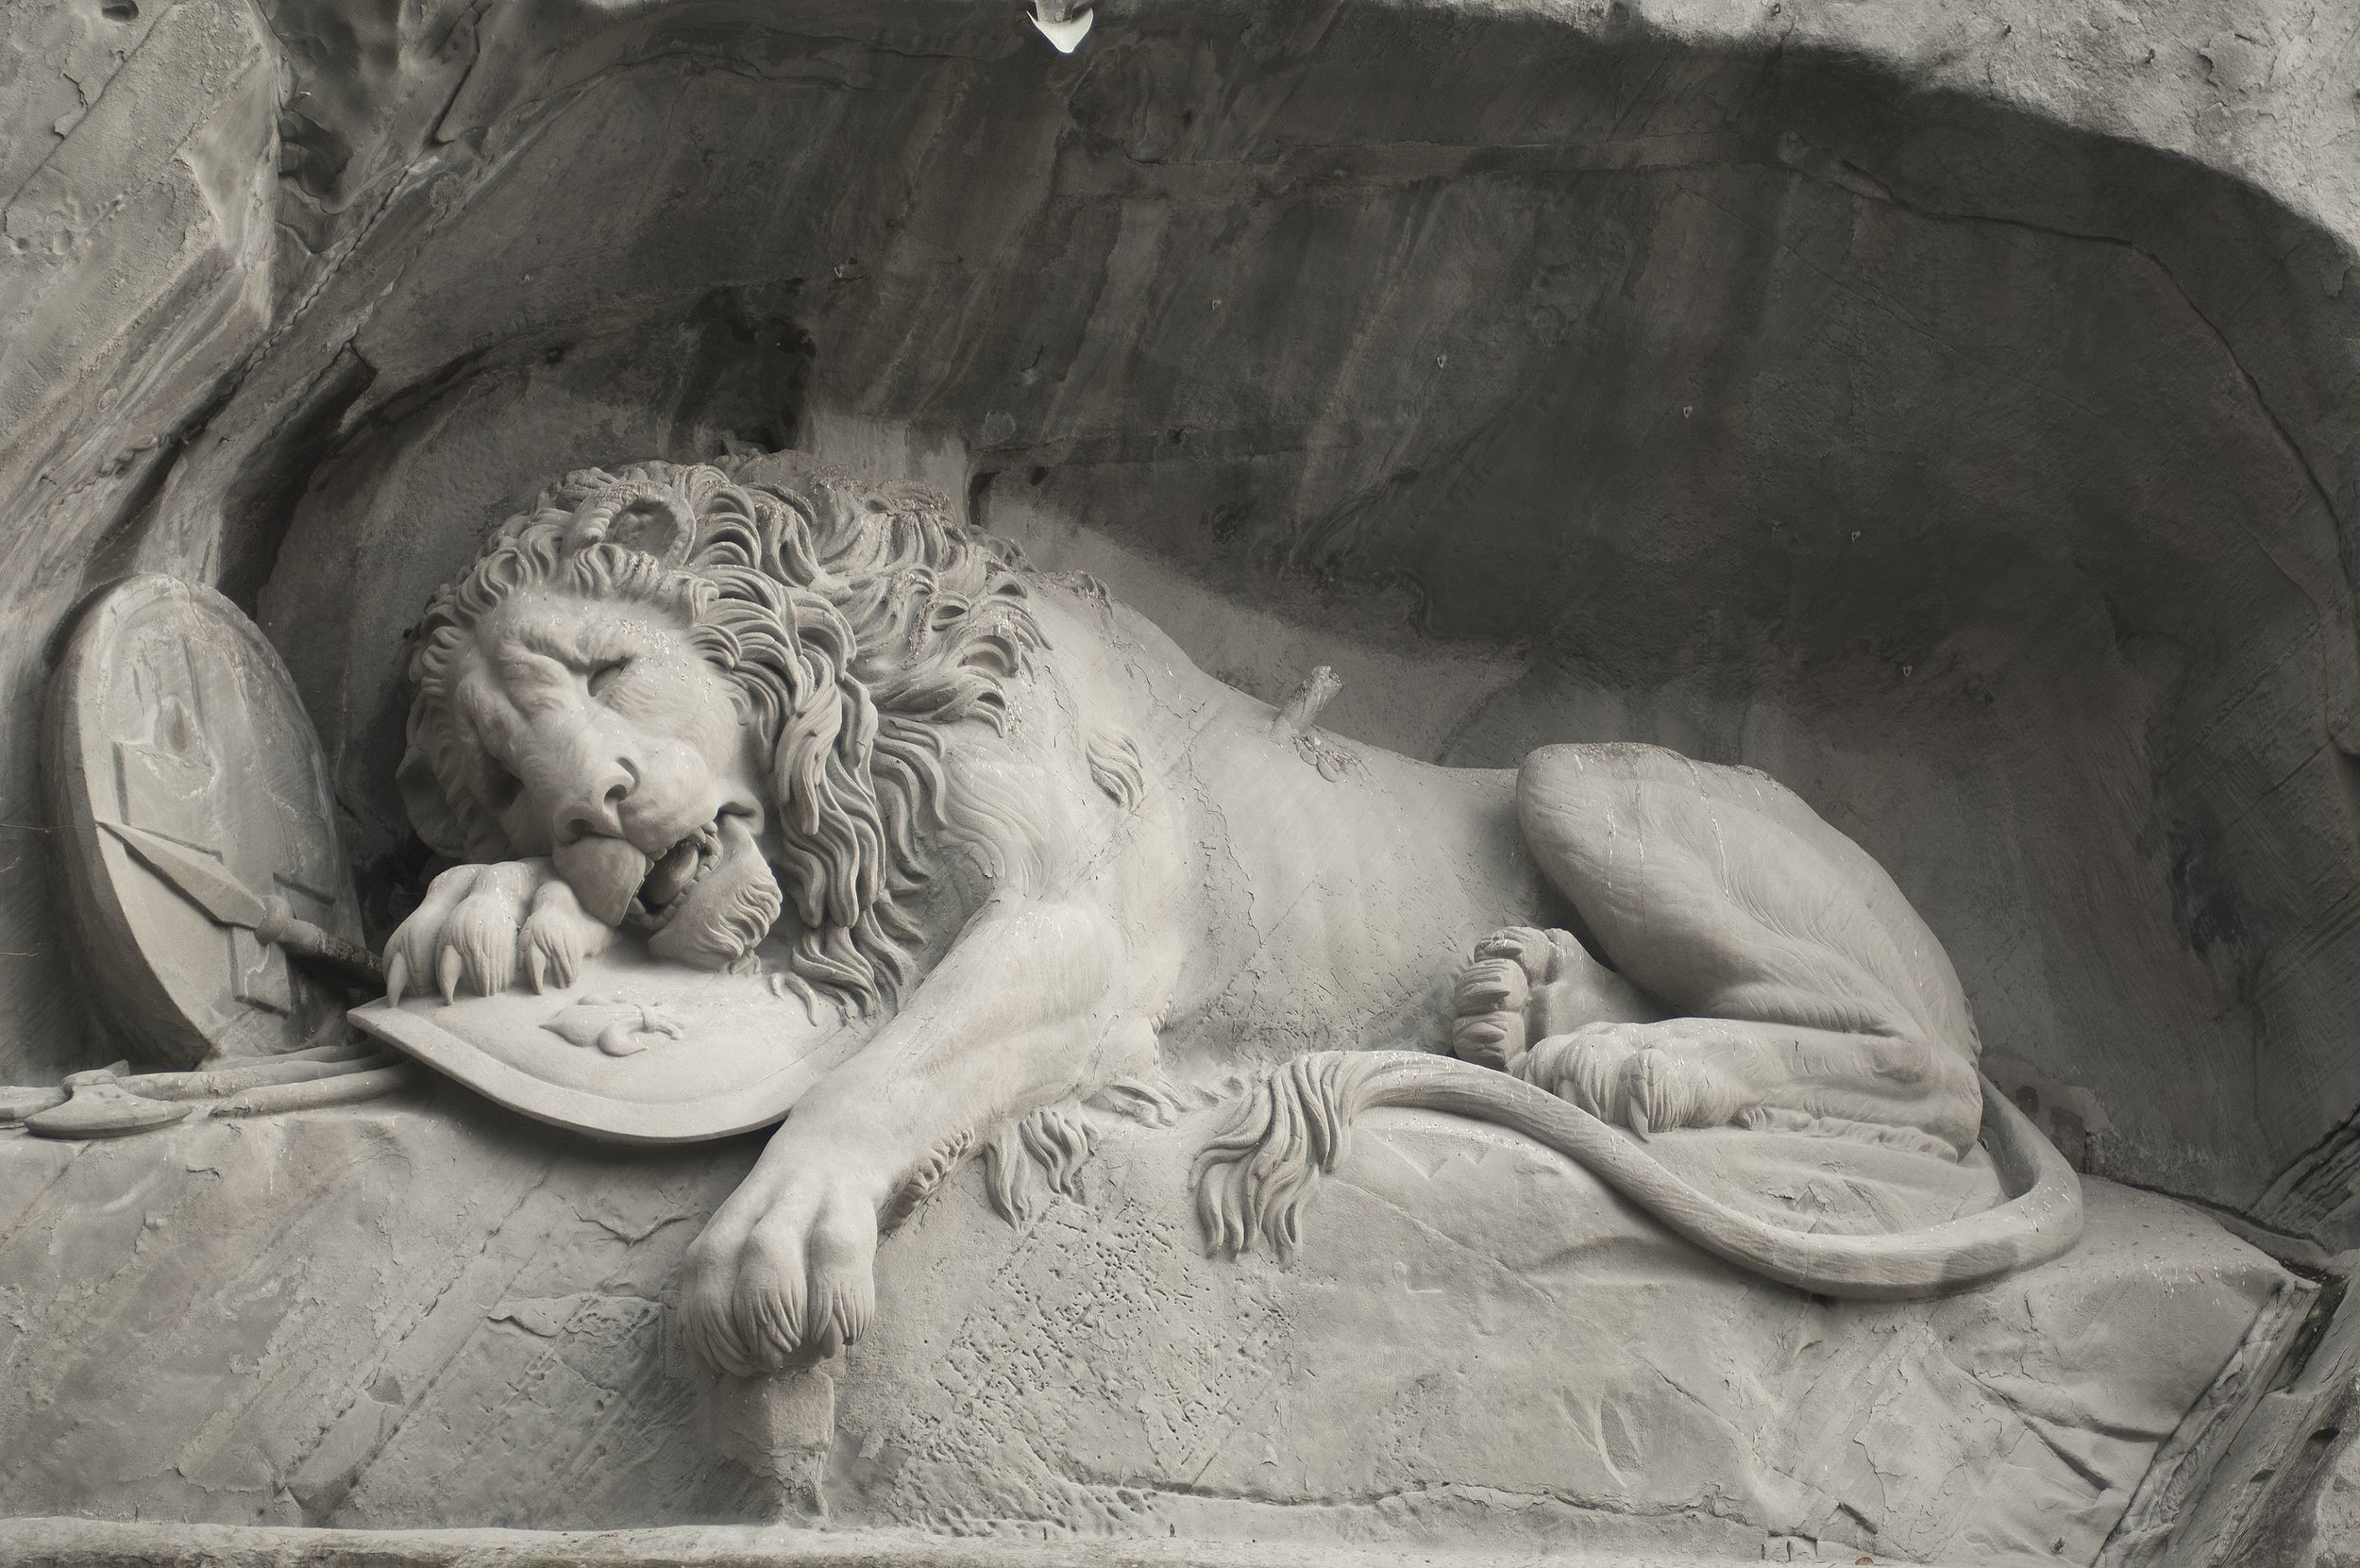 Löwendenkmal_-_The_Lion_Monument_(Lucerne)_02.jpg